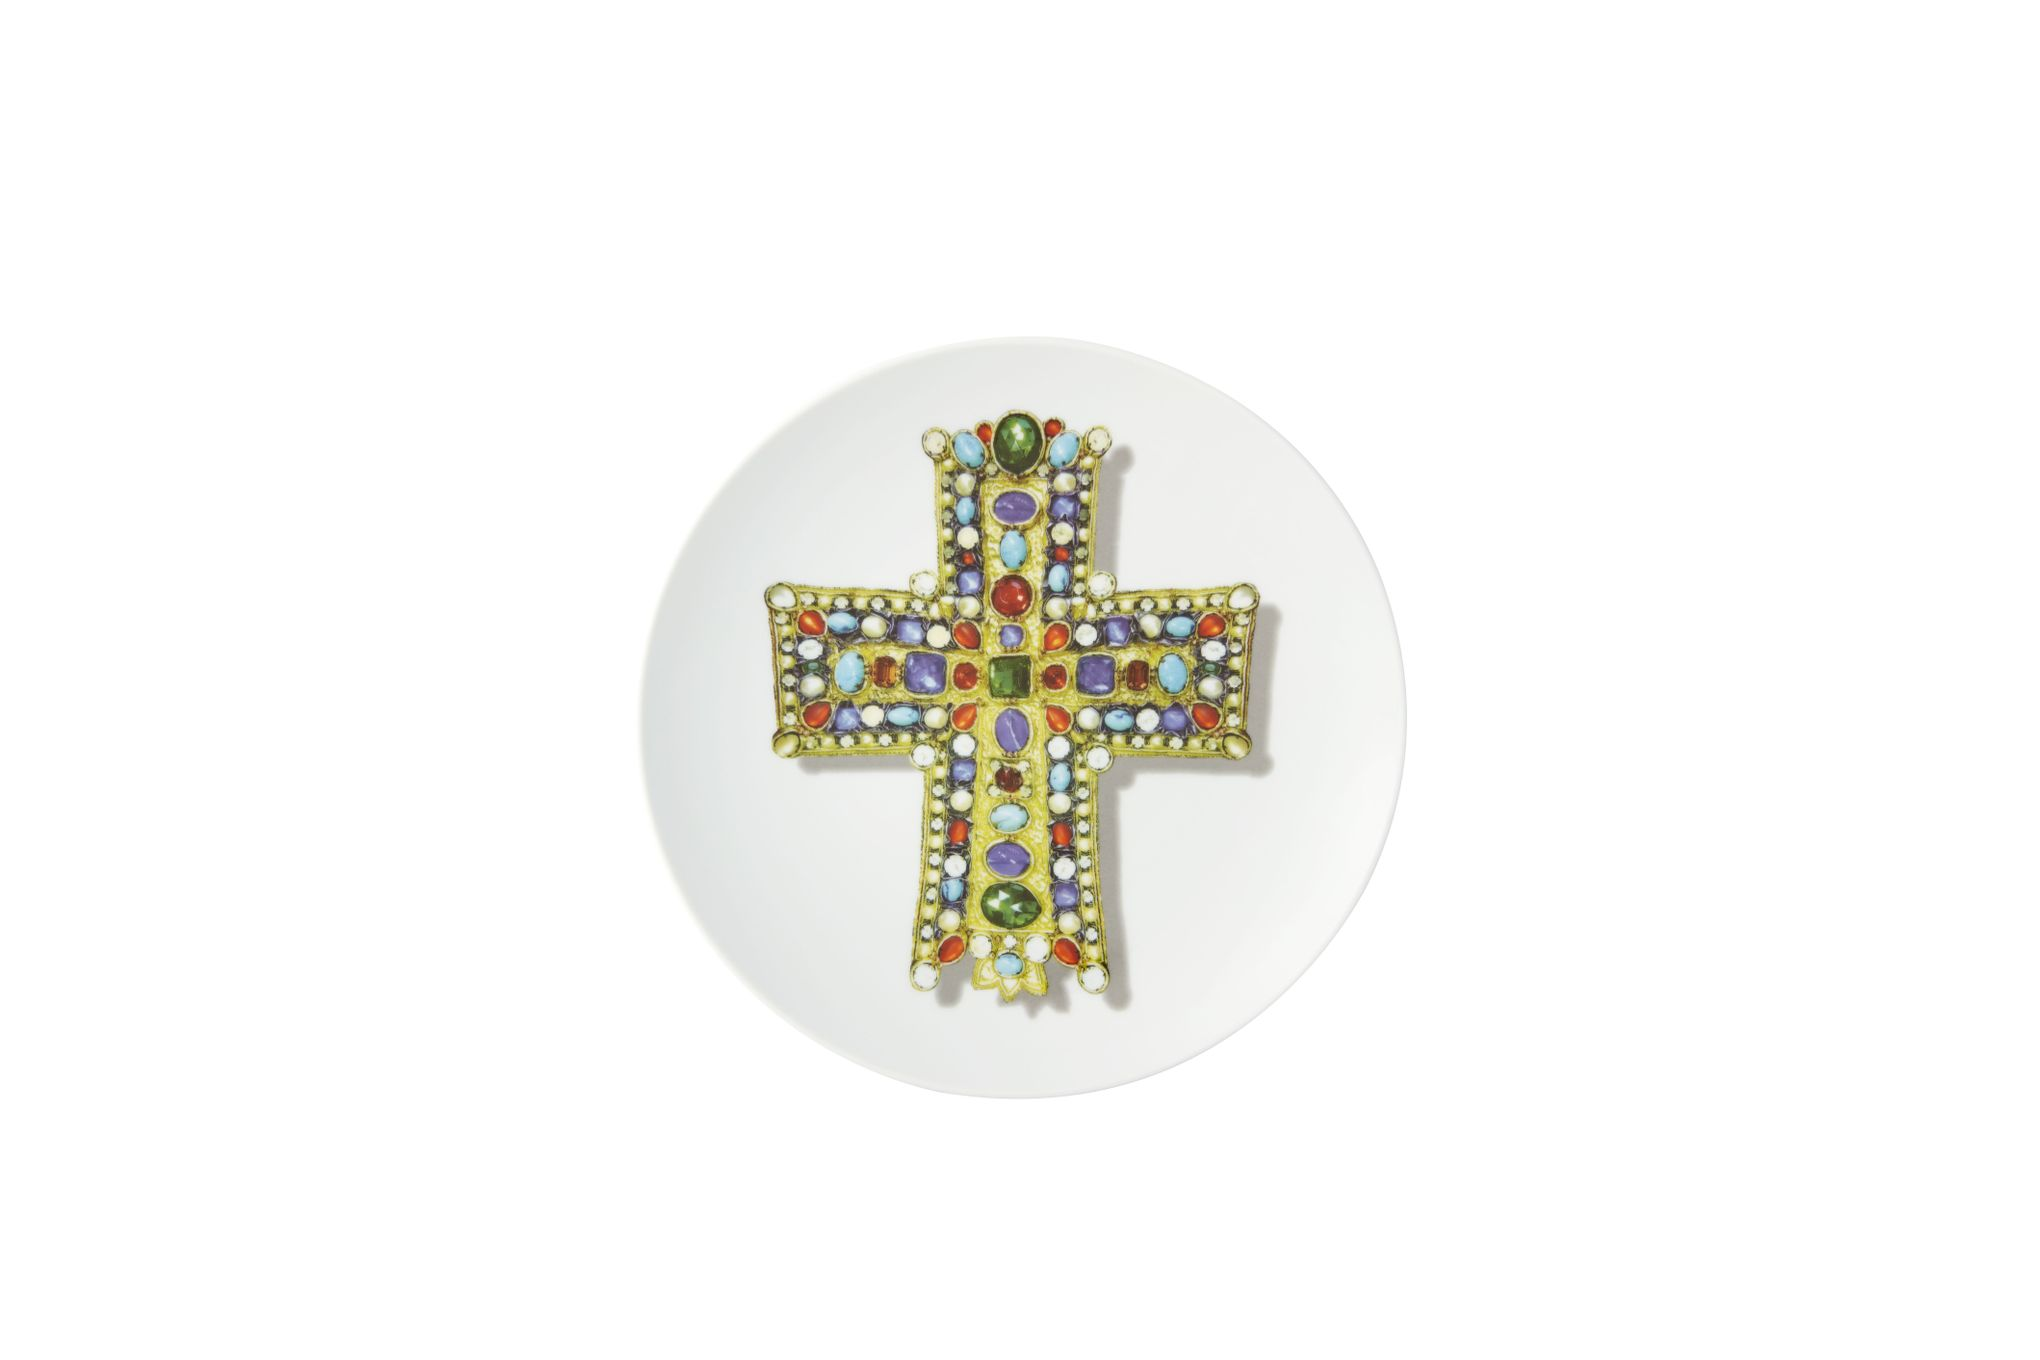 Christian Lacroix Love Who You Want Plate - Giftware Lacroix Lacroix - Gift Boxed 23cm thumb 2